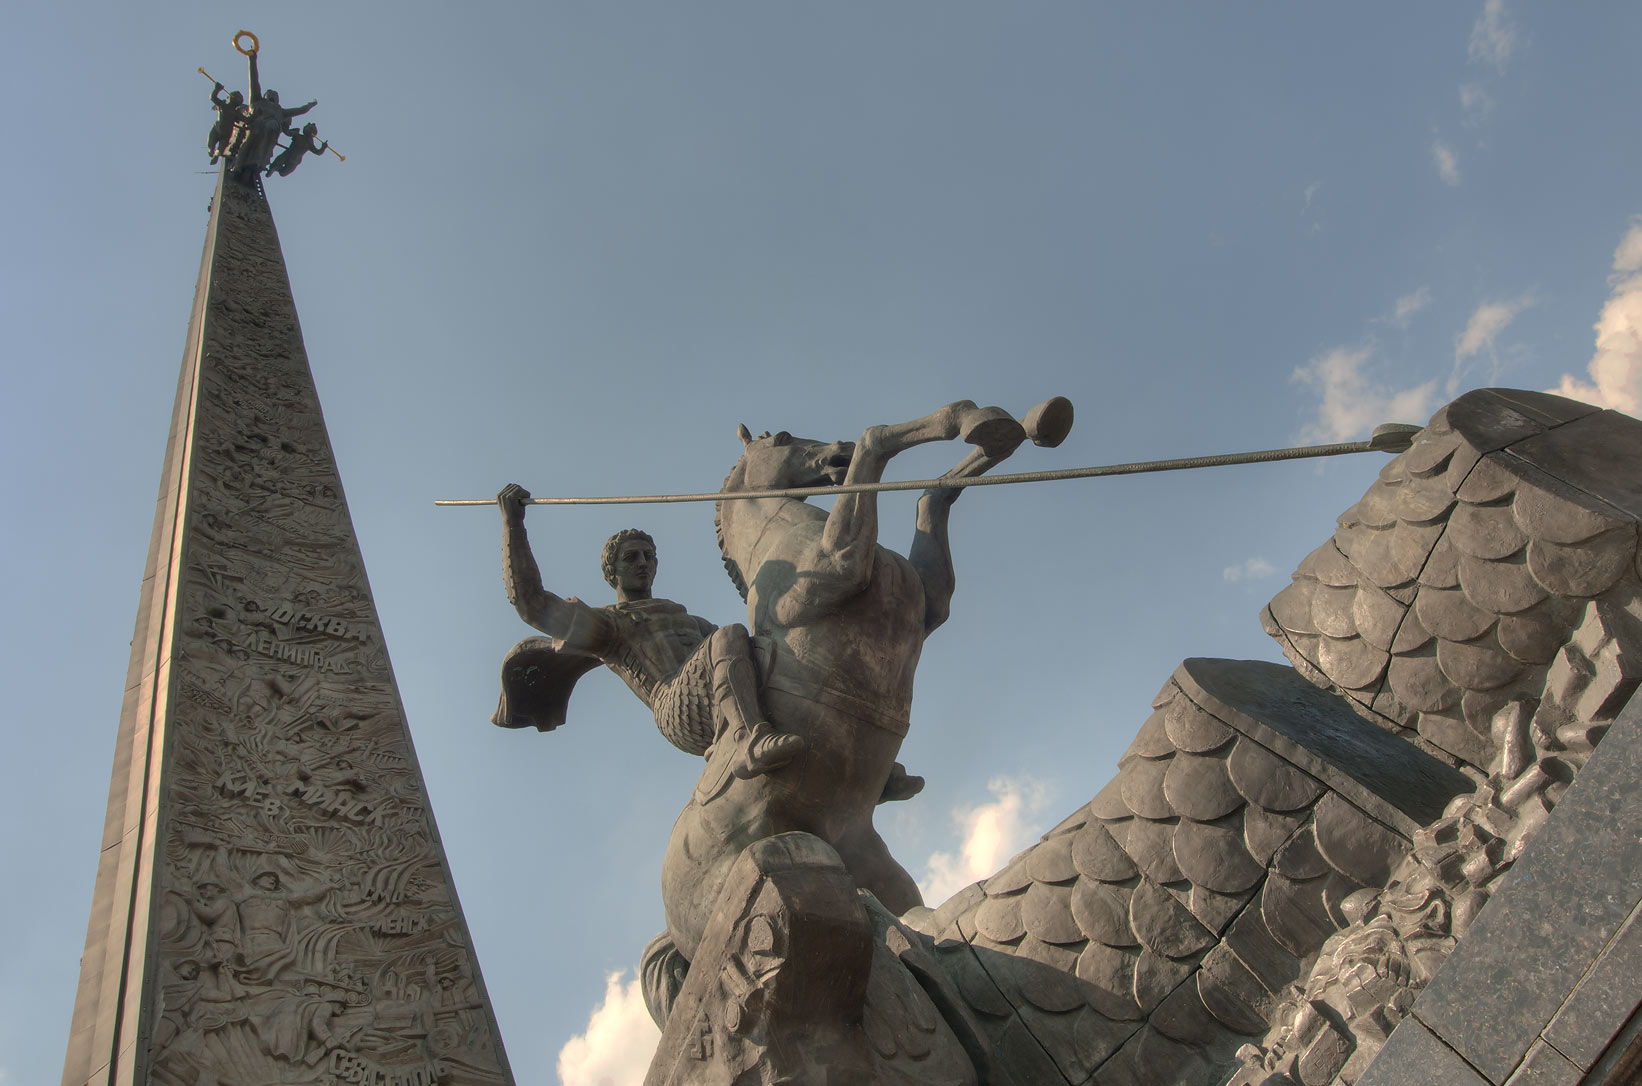 Obelisk and a monument of St. George slaying the...on Poklonnaya Gora. Moscow, Russia